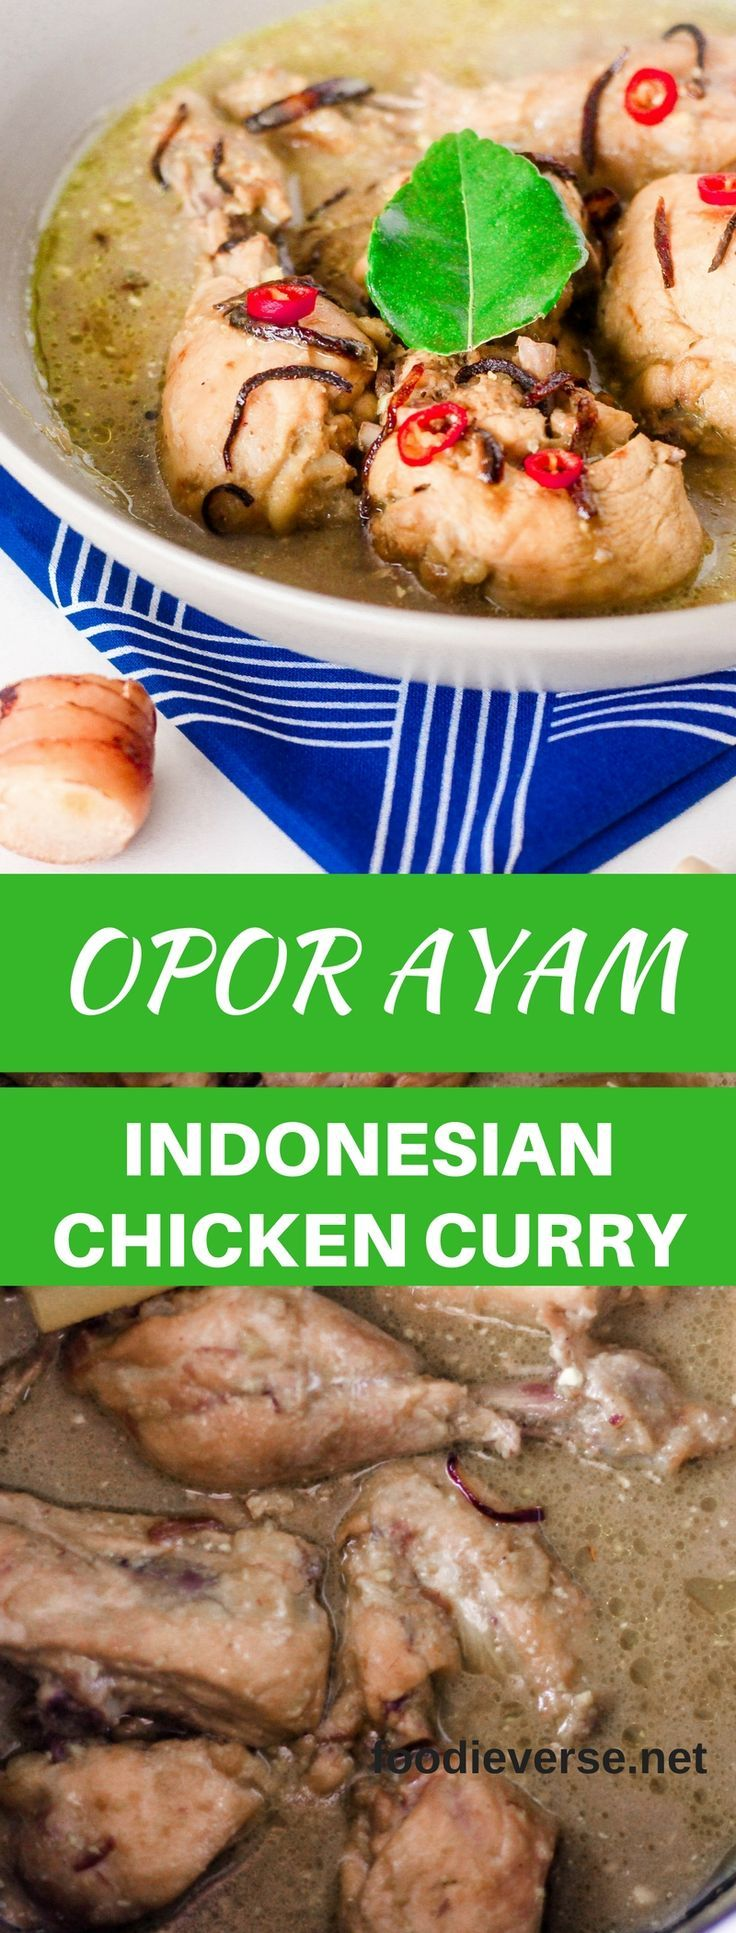 Opor Ayam is an Indonesian Chicken Curry from Java. Chicken is braised in coconut milk with a fragrant spice curry paste consisting of galangal, ginger, shallots and spices. Flavours are enhanced with lemongrass and kaffir lime leaves. This curry is very popular during Eid (Aidul Fitri), Eid marking end of Ramadan.